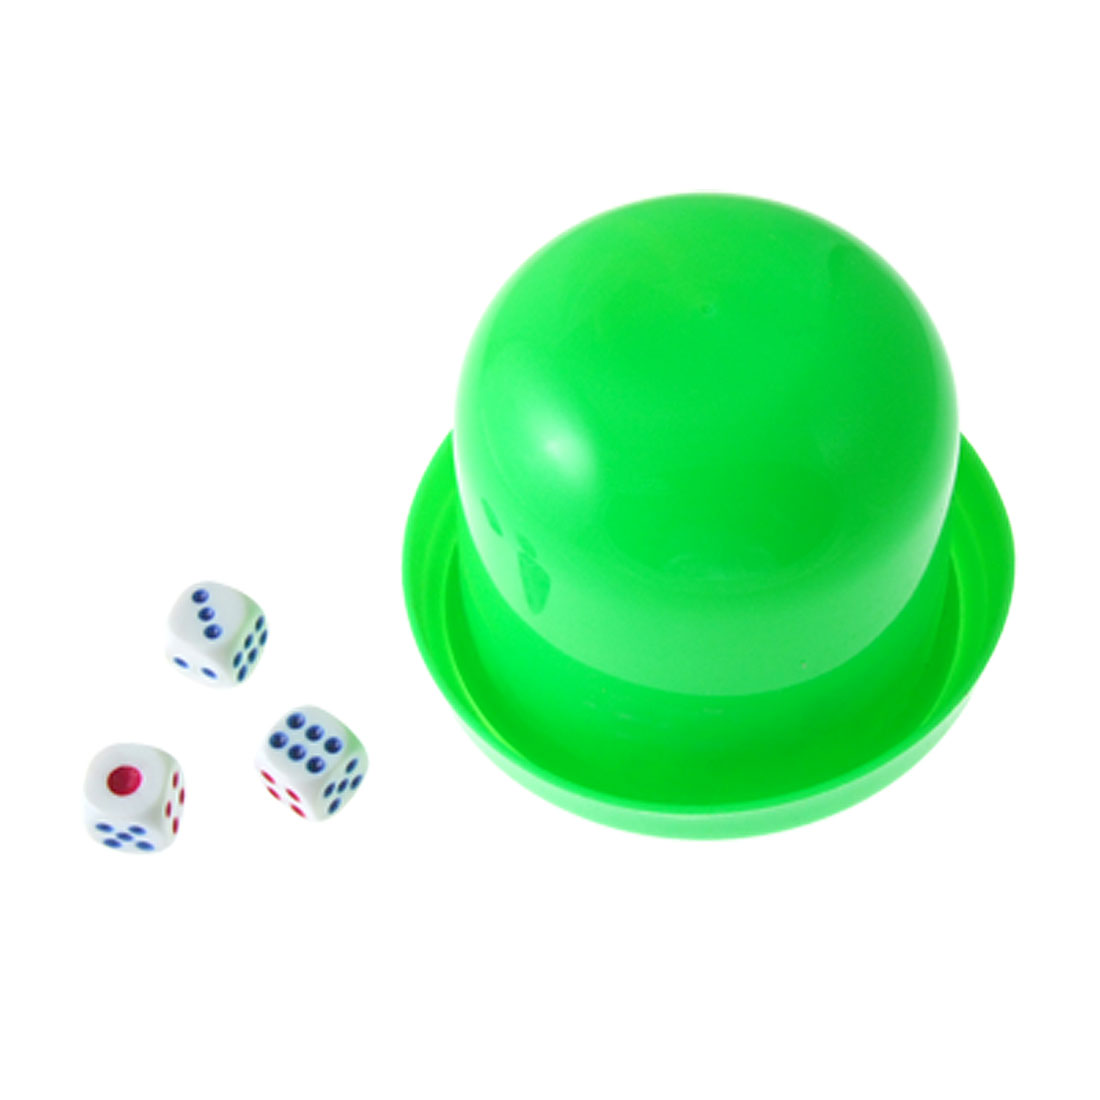 Plastic KTV Casual Green Dice Shaker Cup with 3 Dices